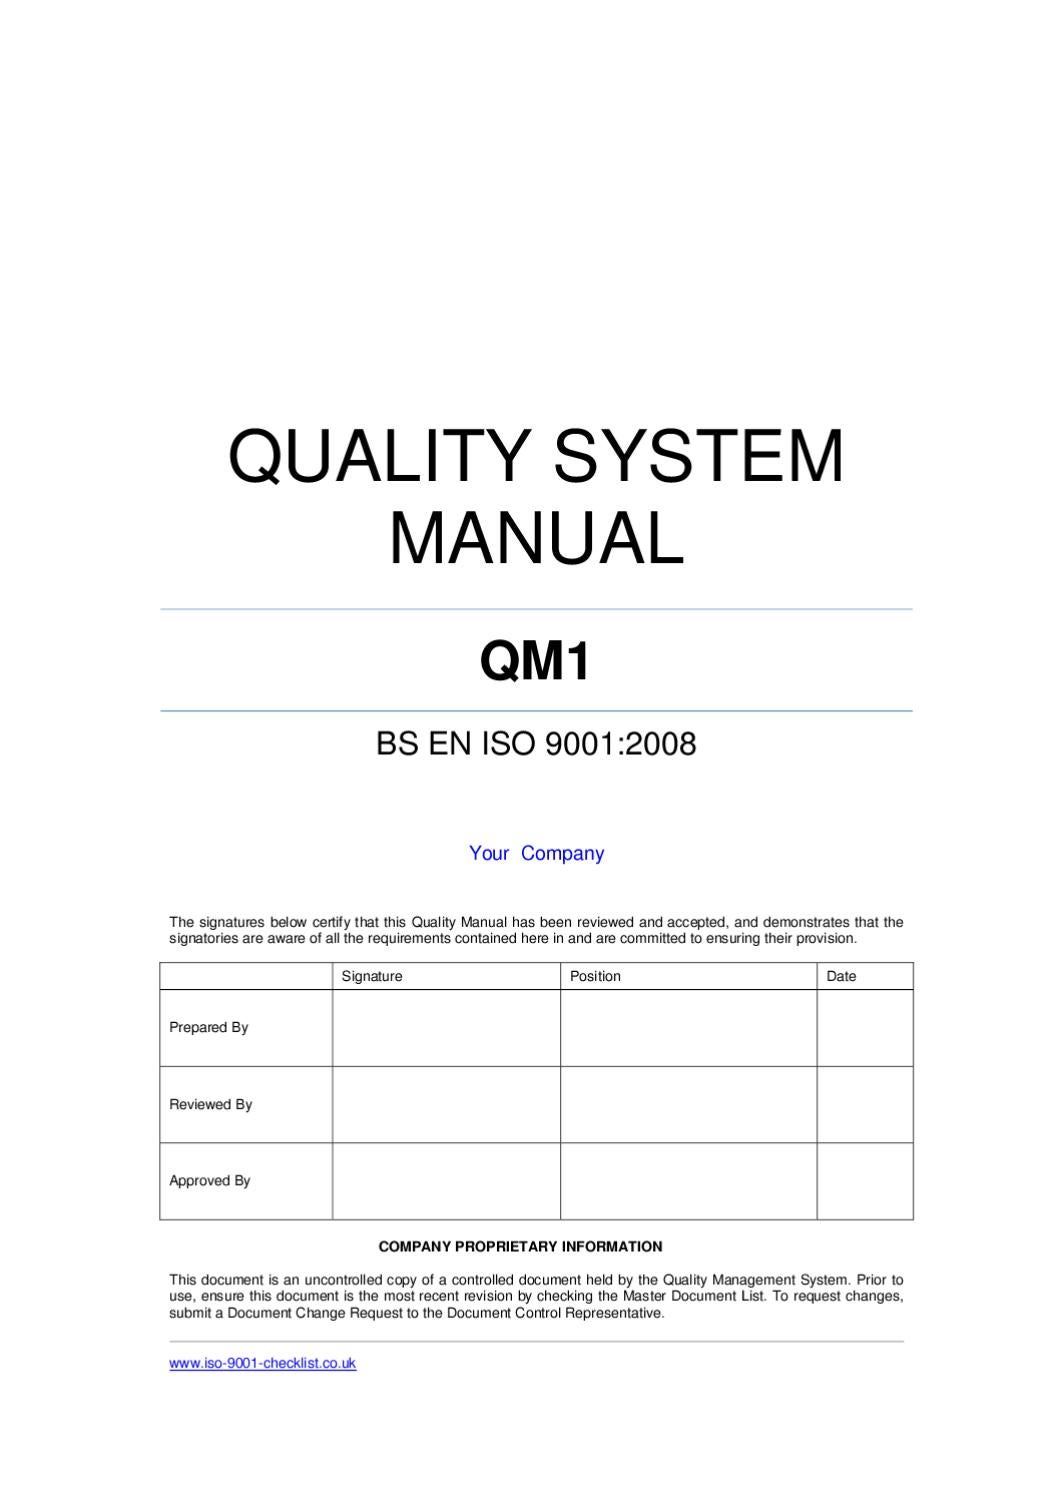 Quality manual template example by iso 9001 checklist issuu for Iso 9001 templates free download